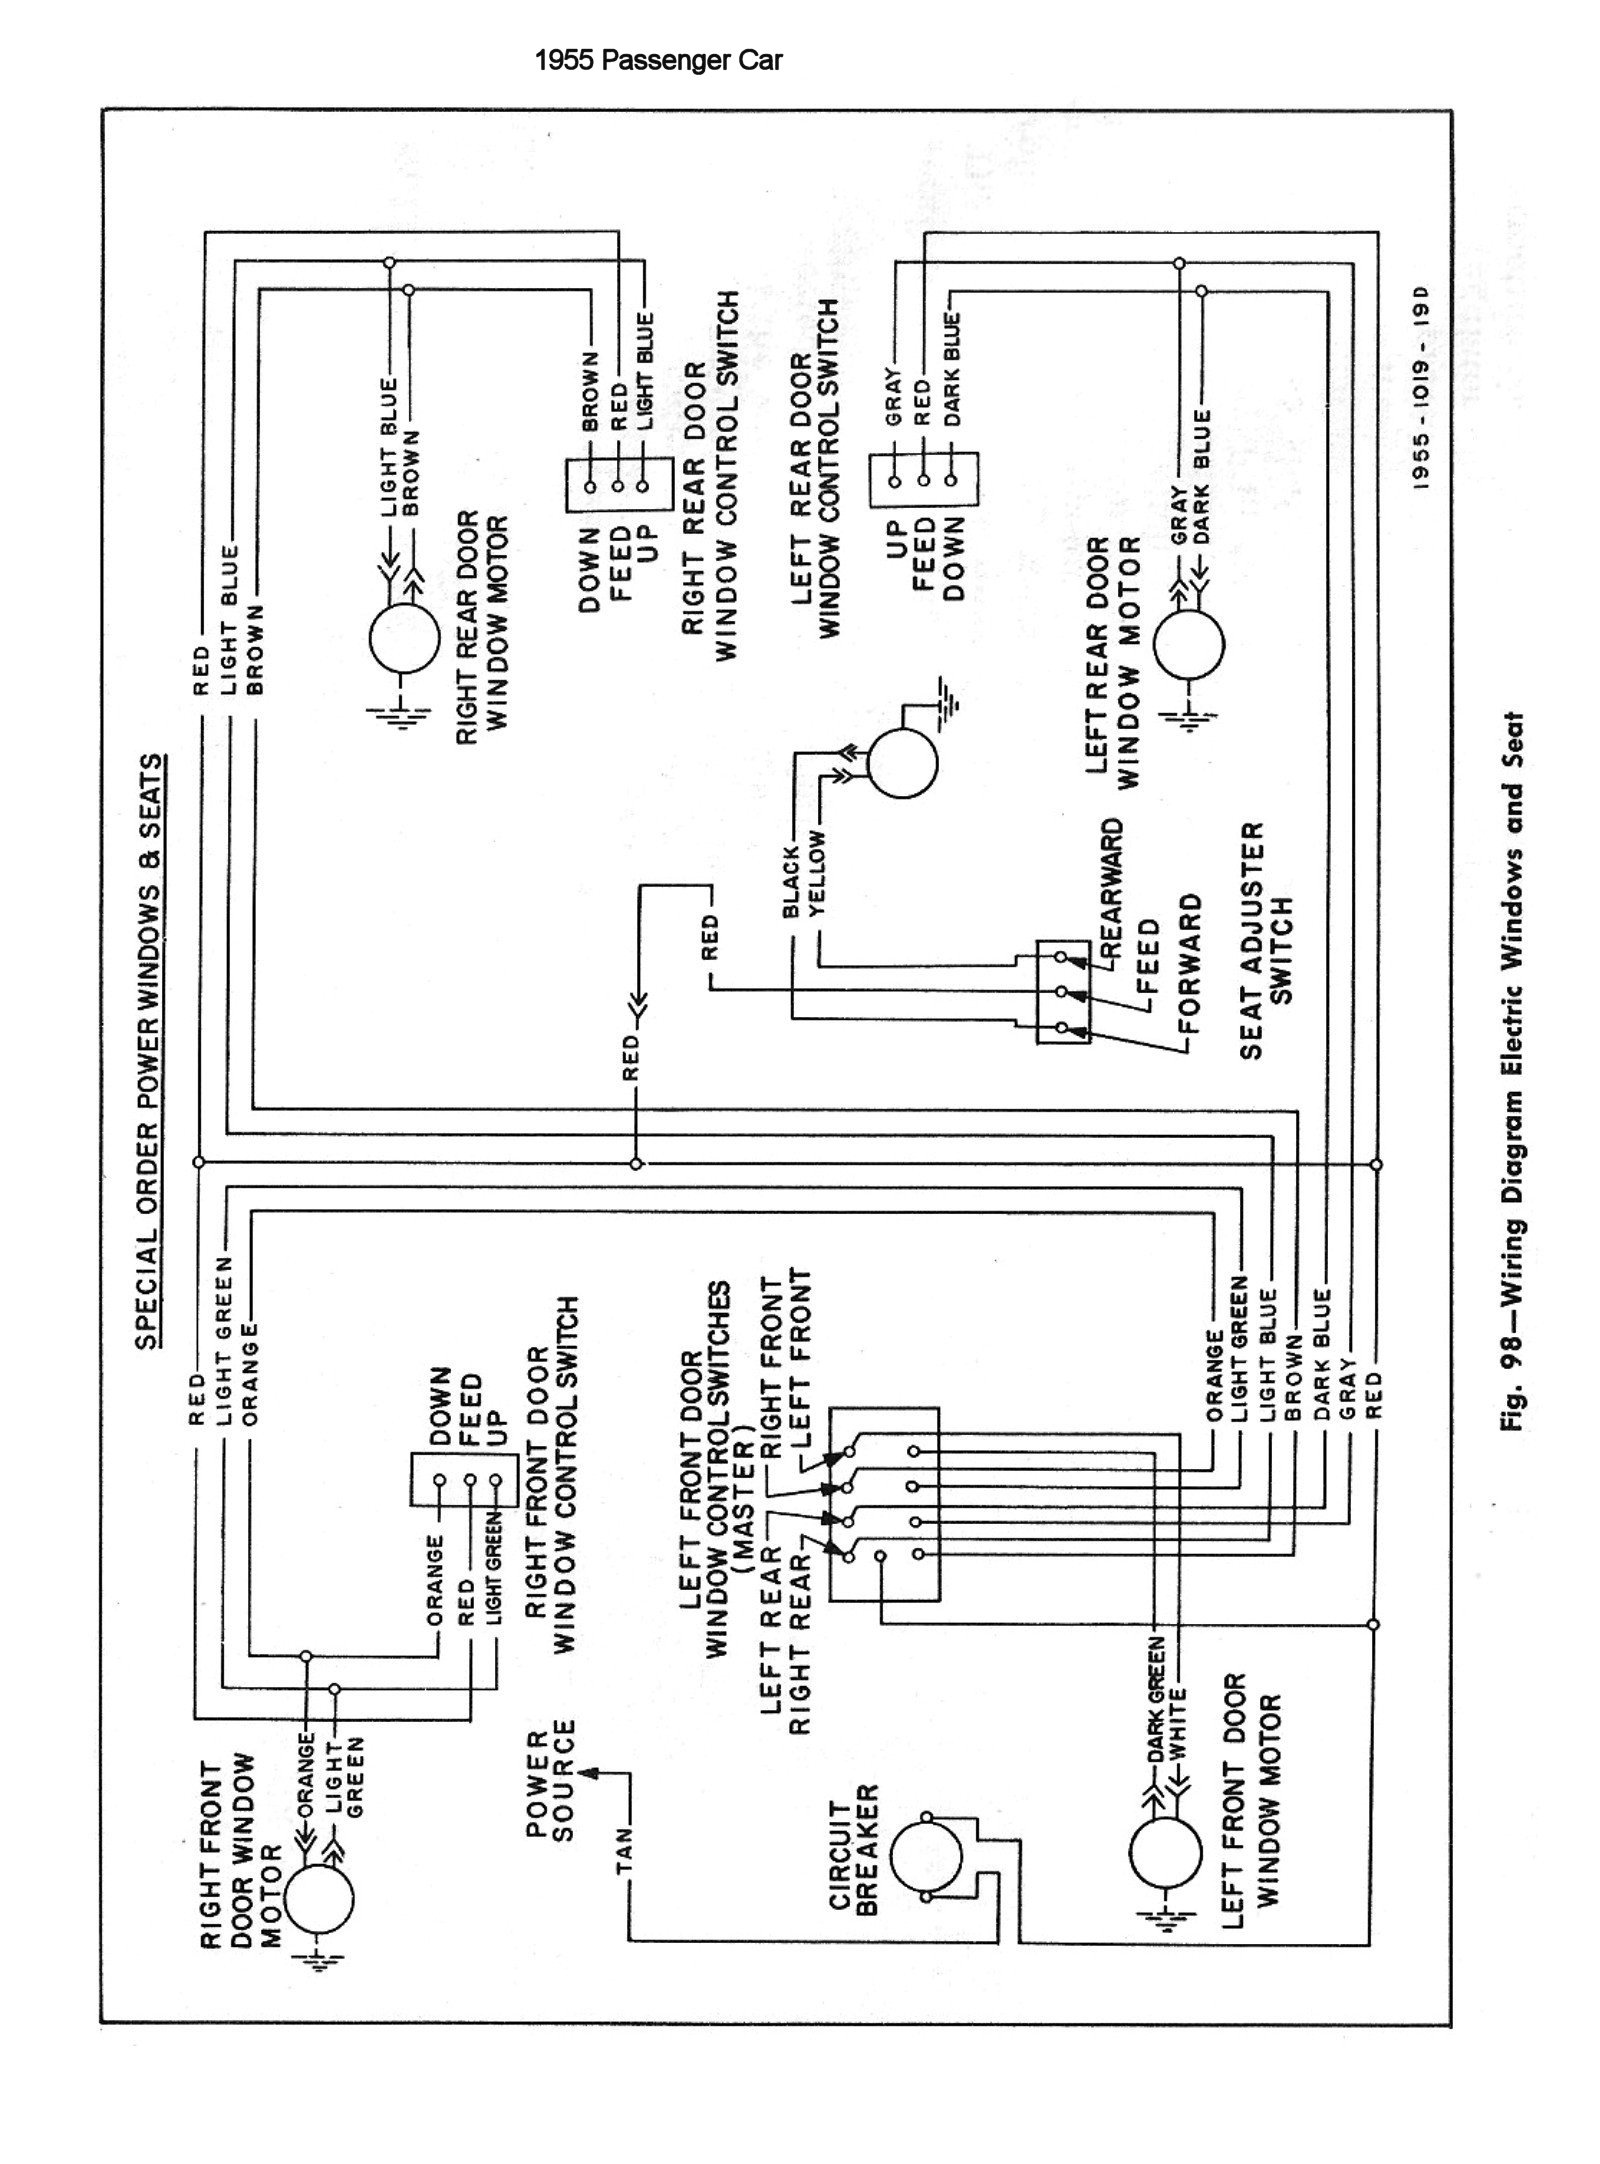 55csm0146 chevy wiring diagrams 1992 Chevy 1500 Sensor Diagram at bayanpartner.co